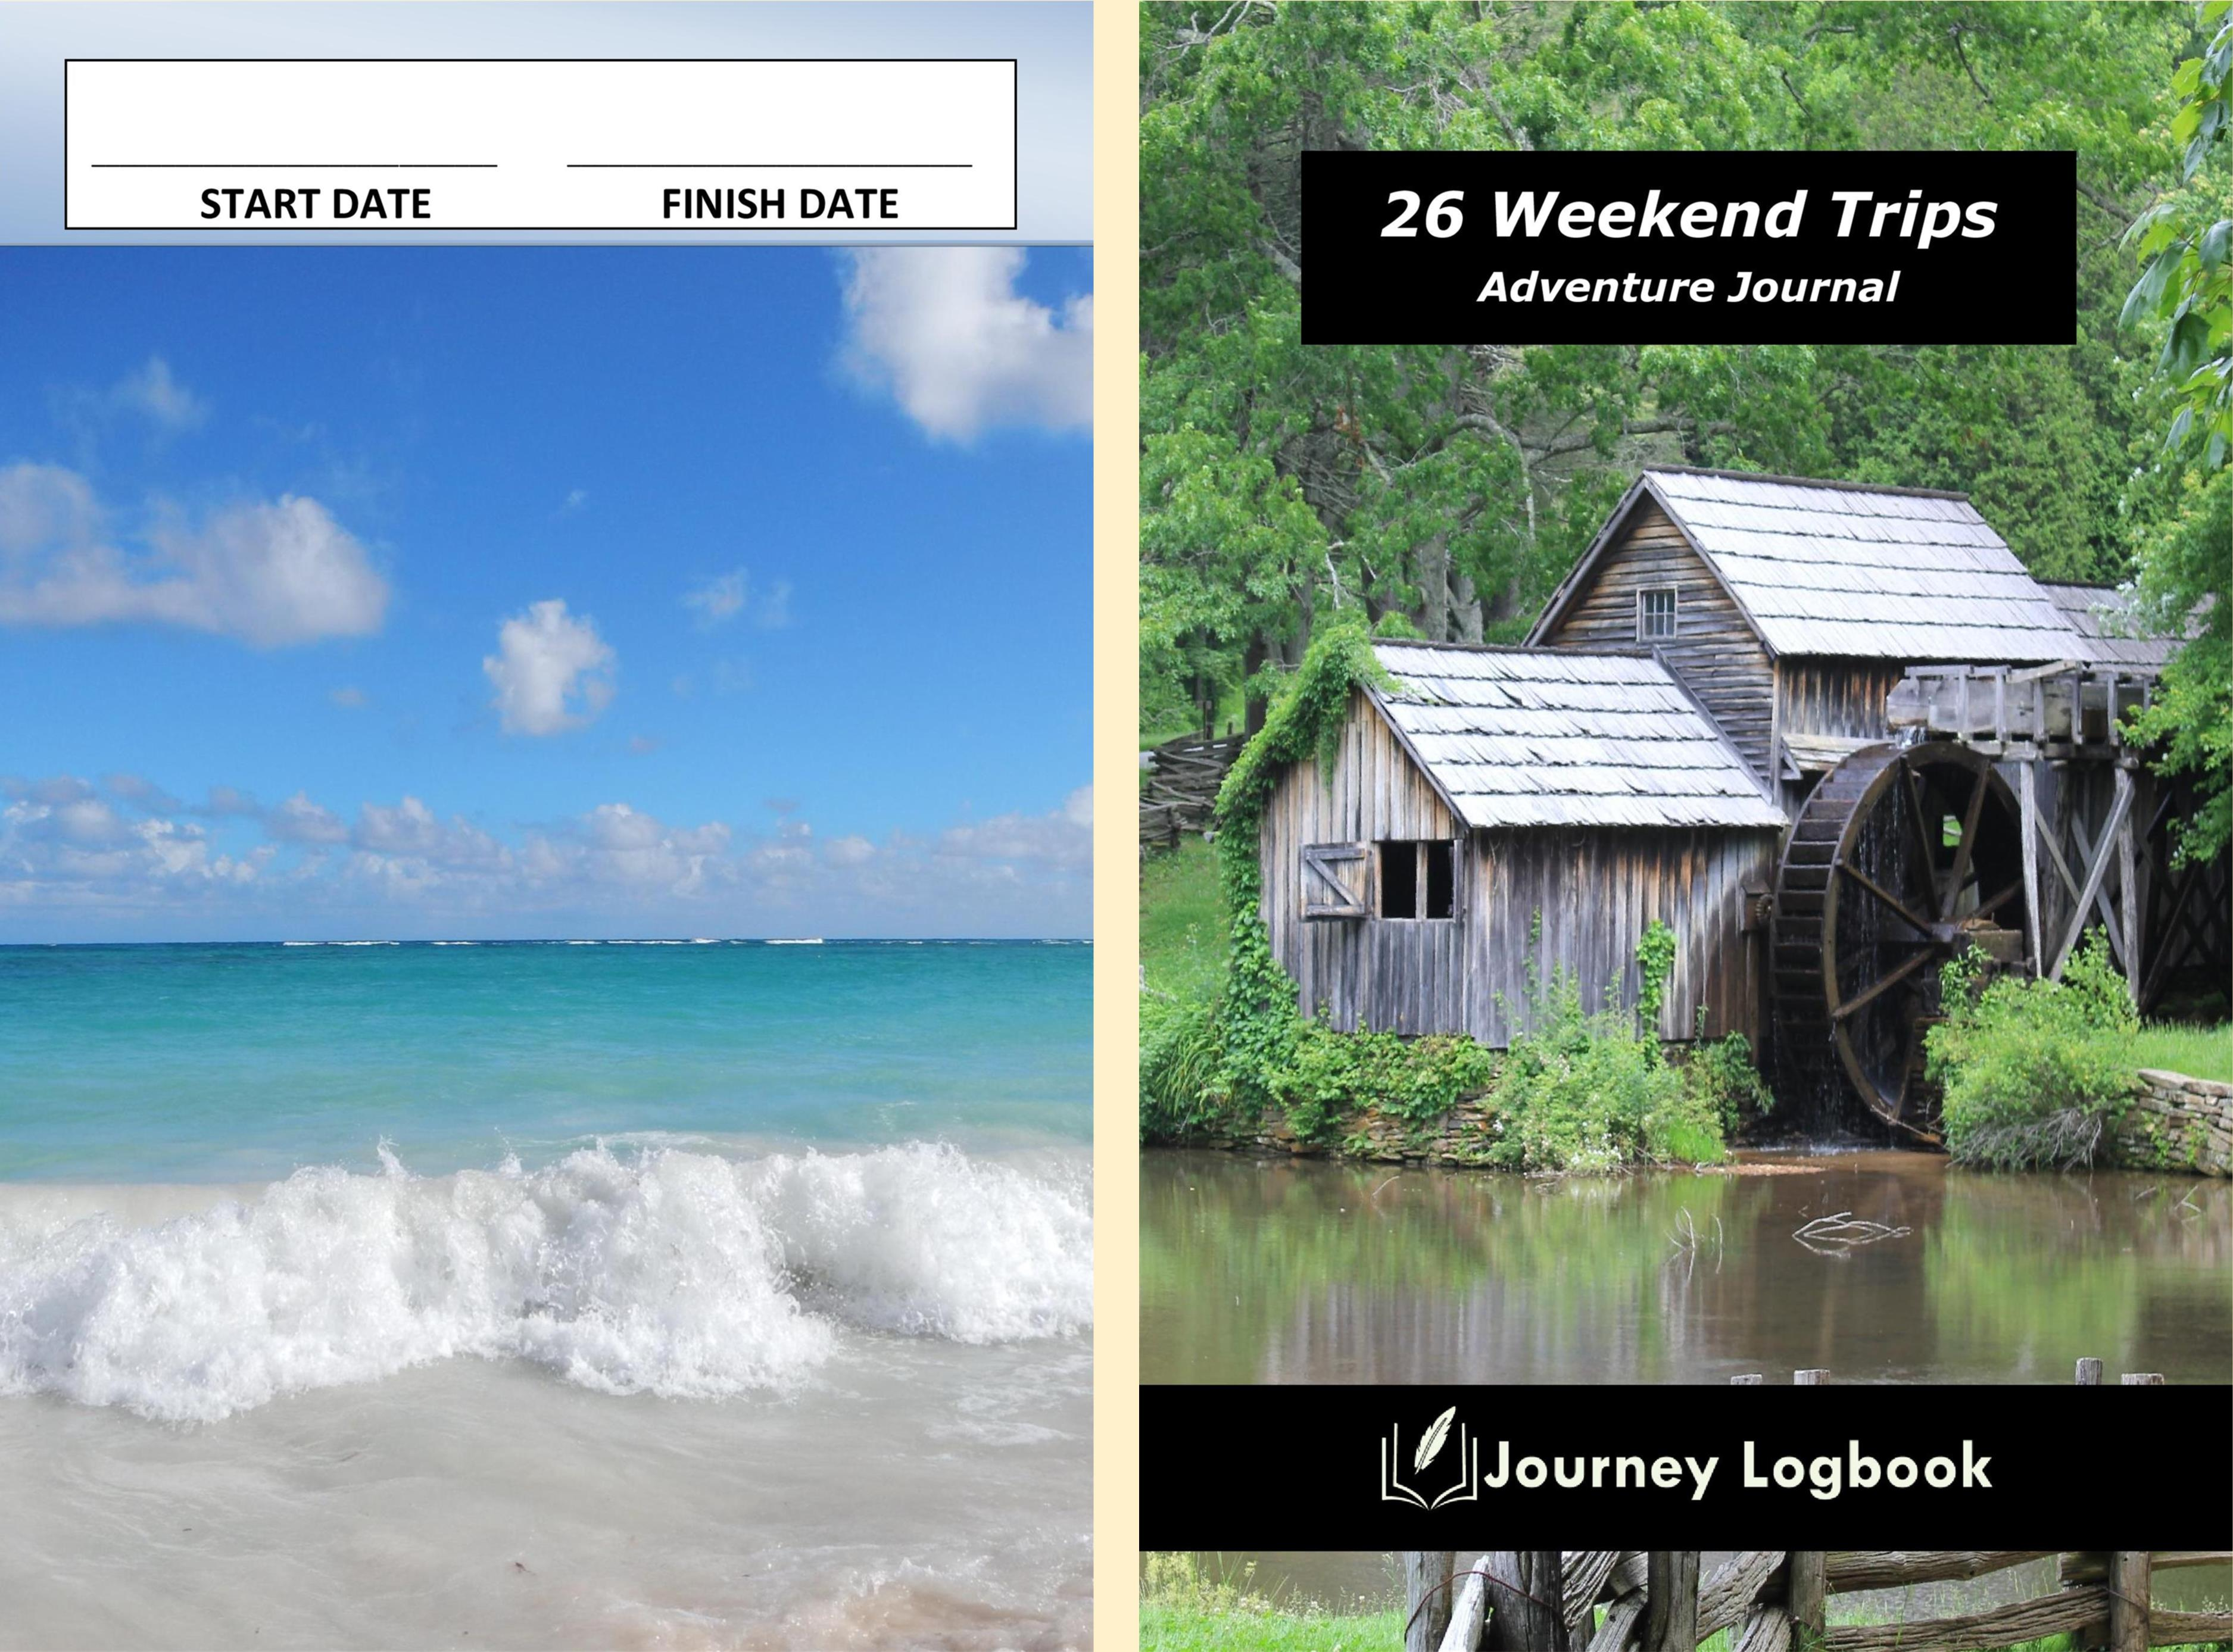 26 Weekend Trips Adventure Journal cover image